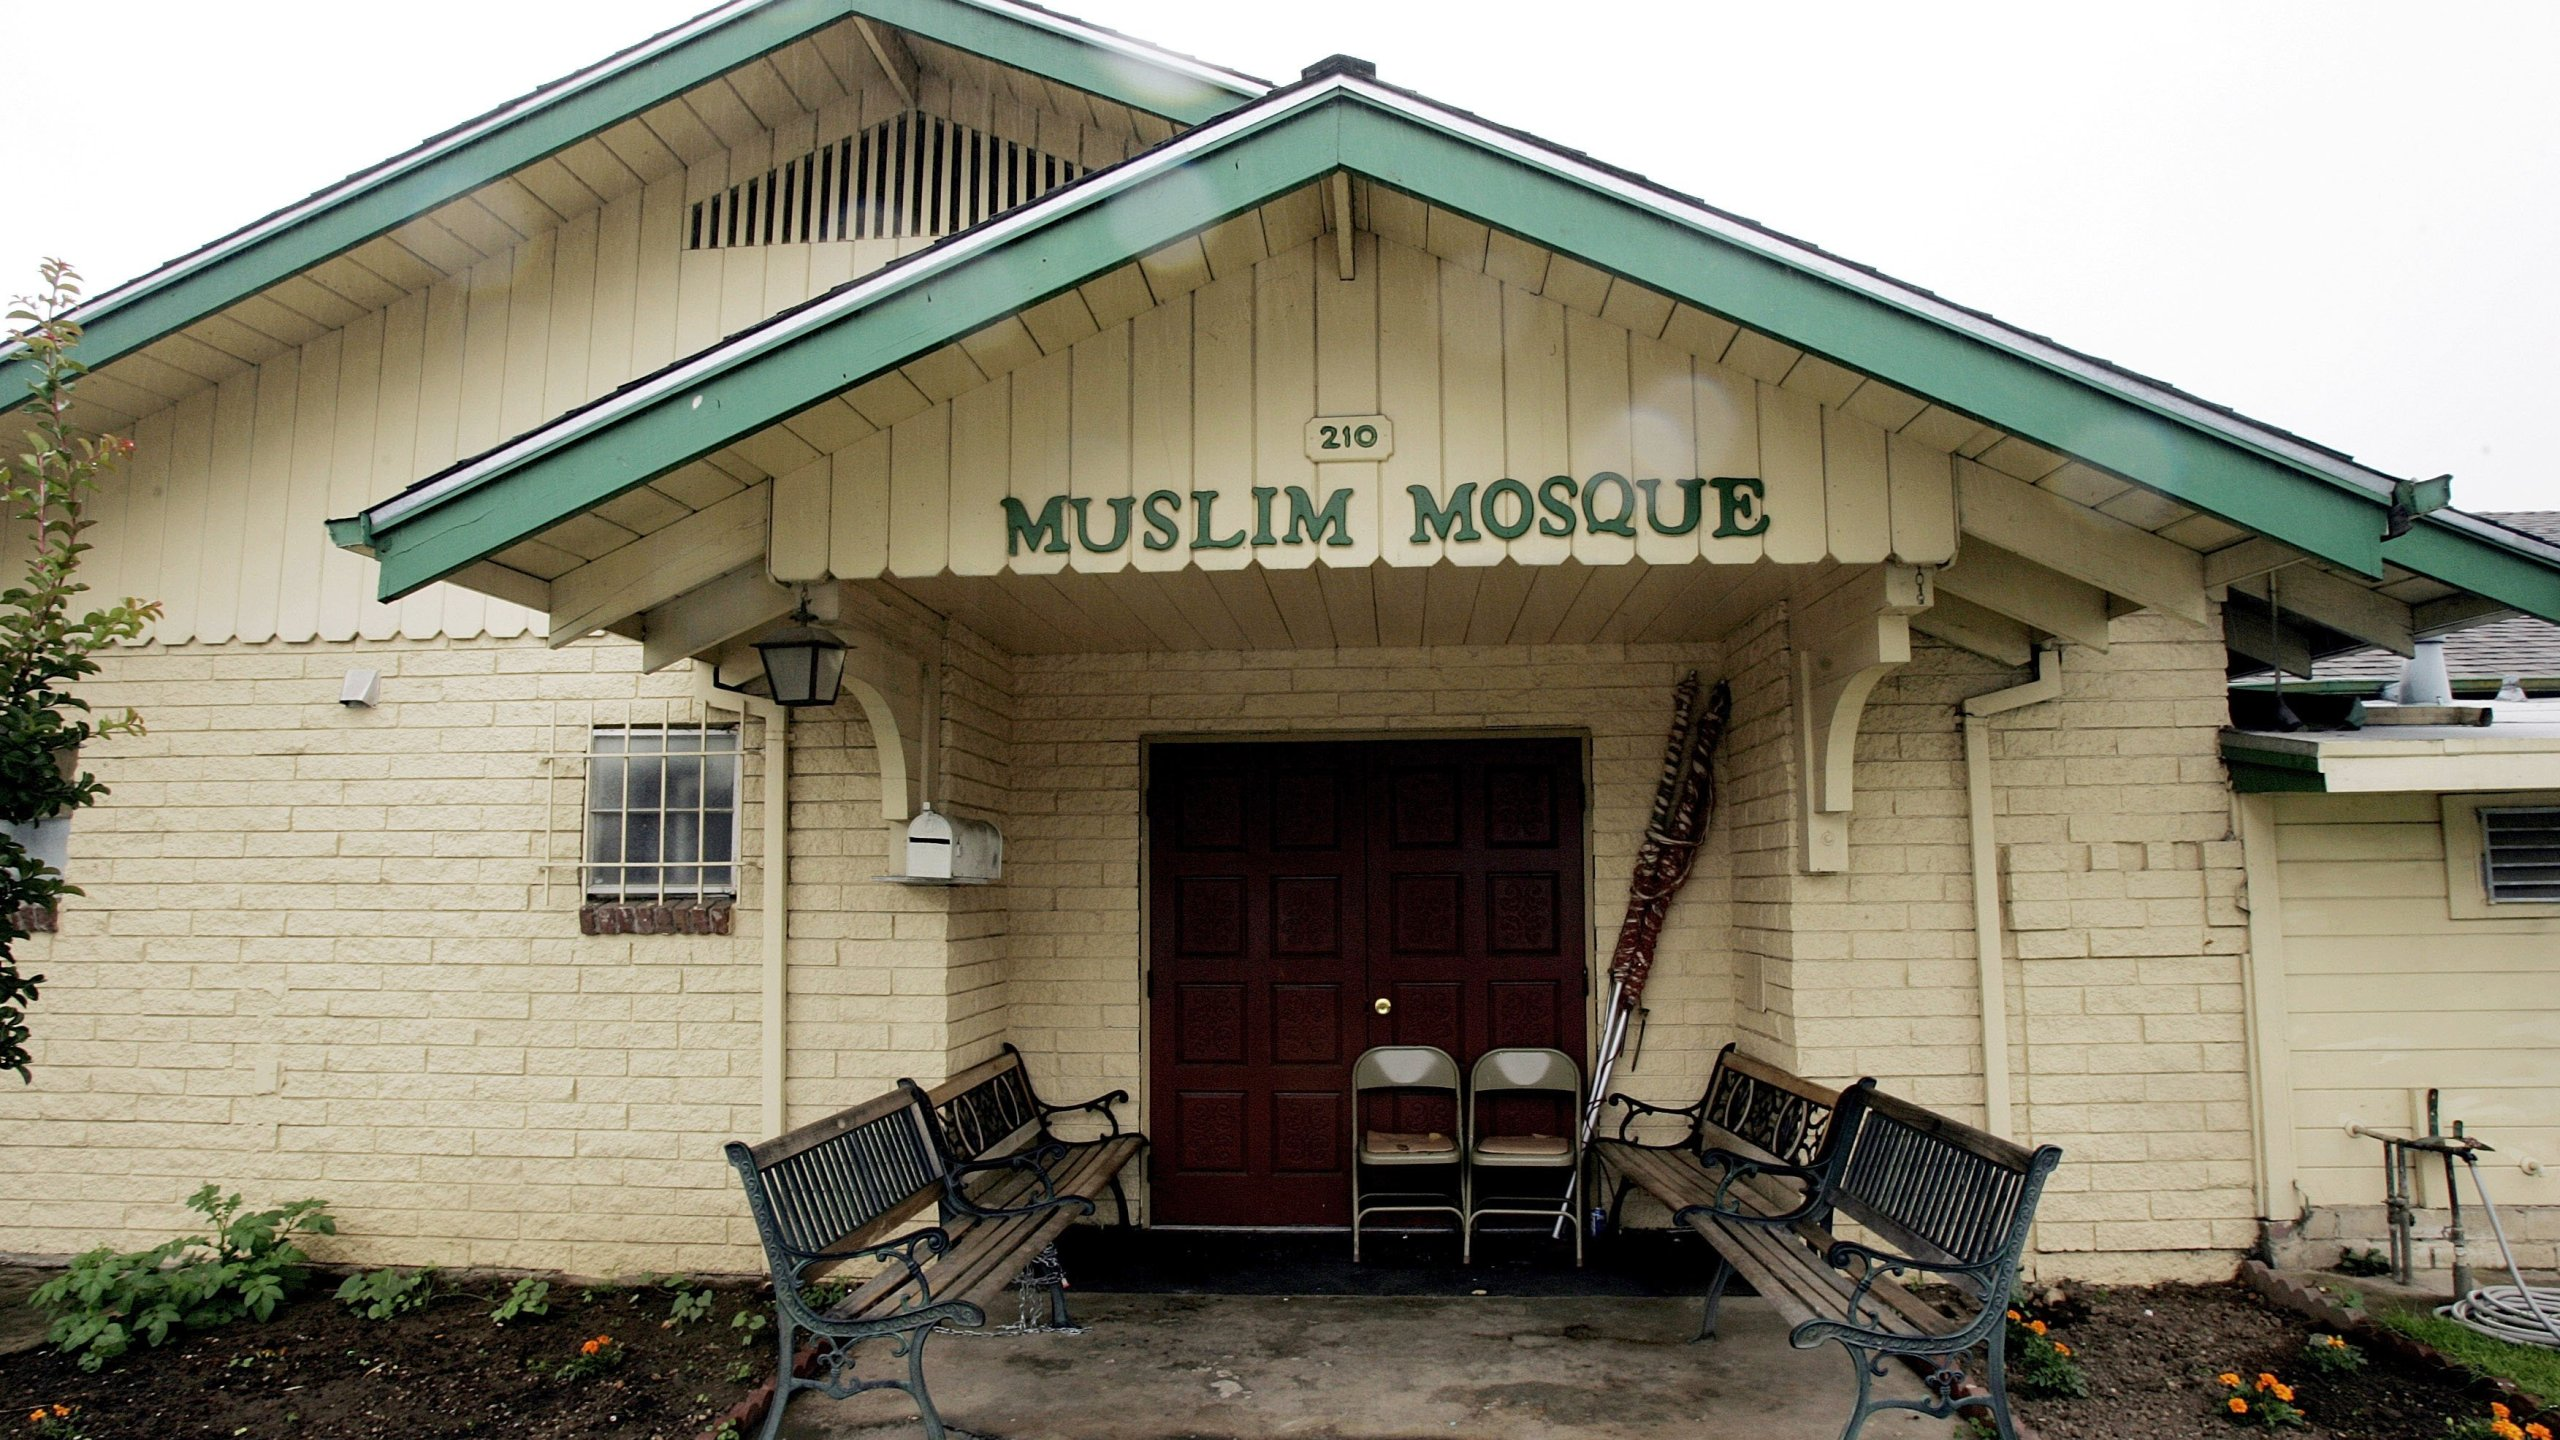 The mosque in Lodi where FBI agents arrested Hamid Hayat is seen on June 8, 2005. (Credit: David Paul Morris / Getty Images)